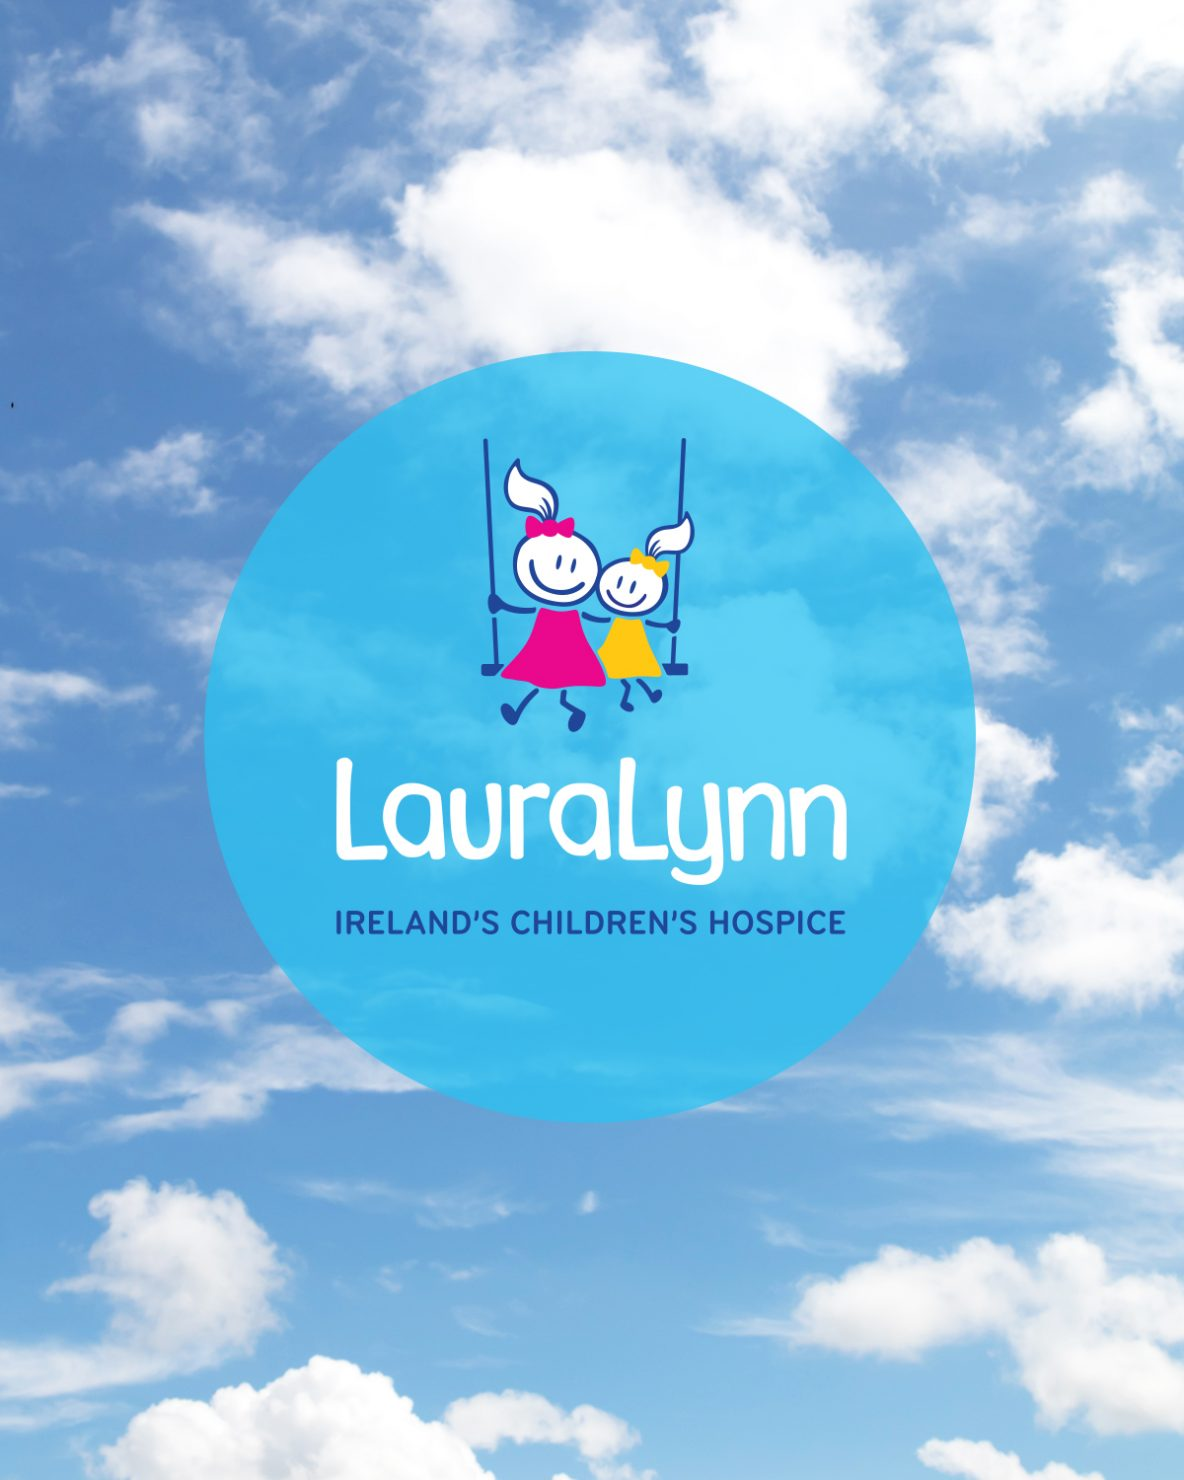 Laura Lynn - Irelands Childrens Hospice